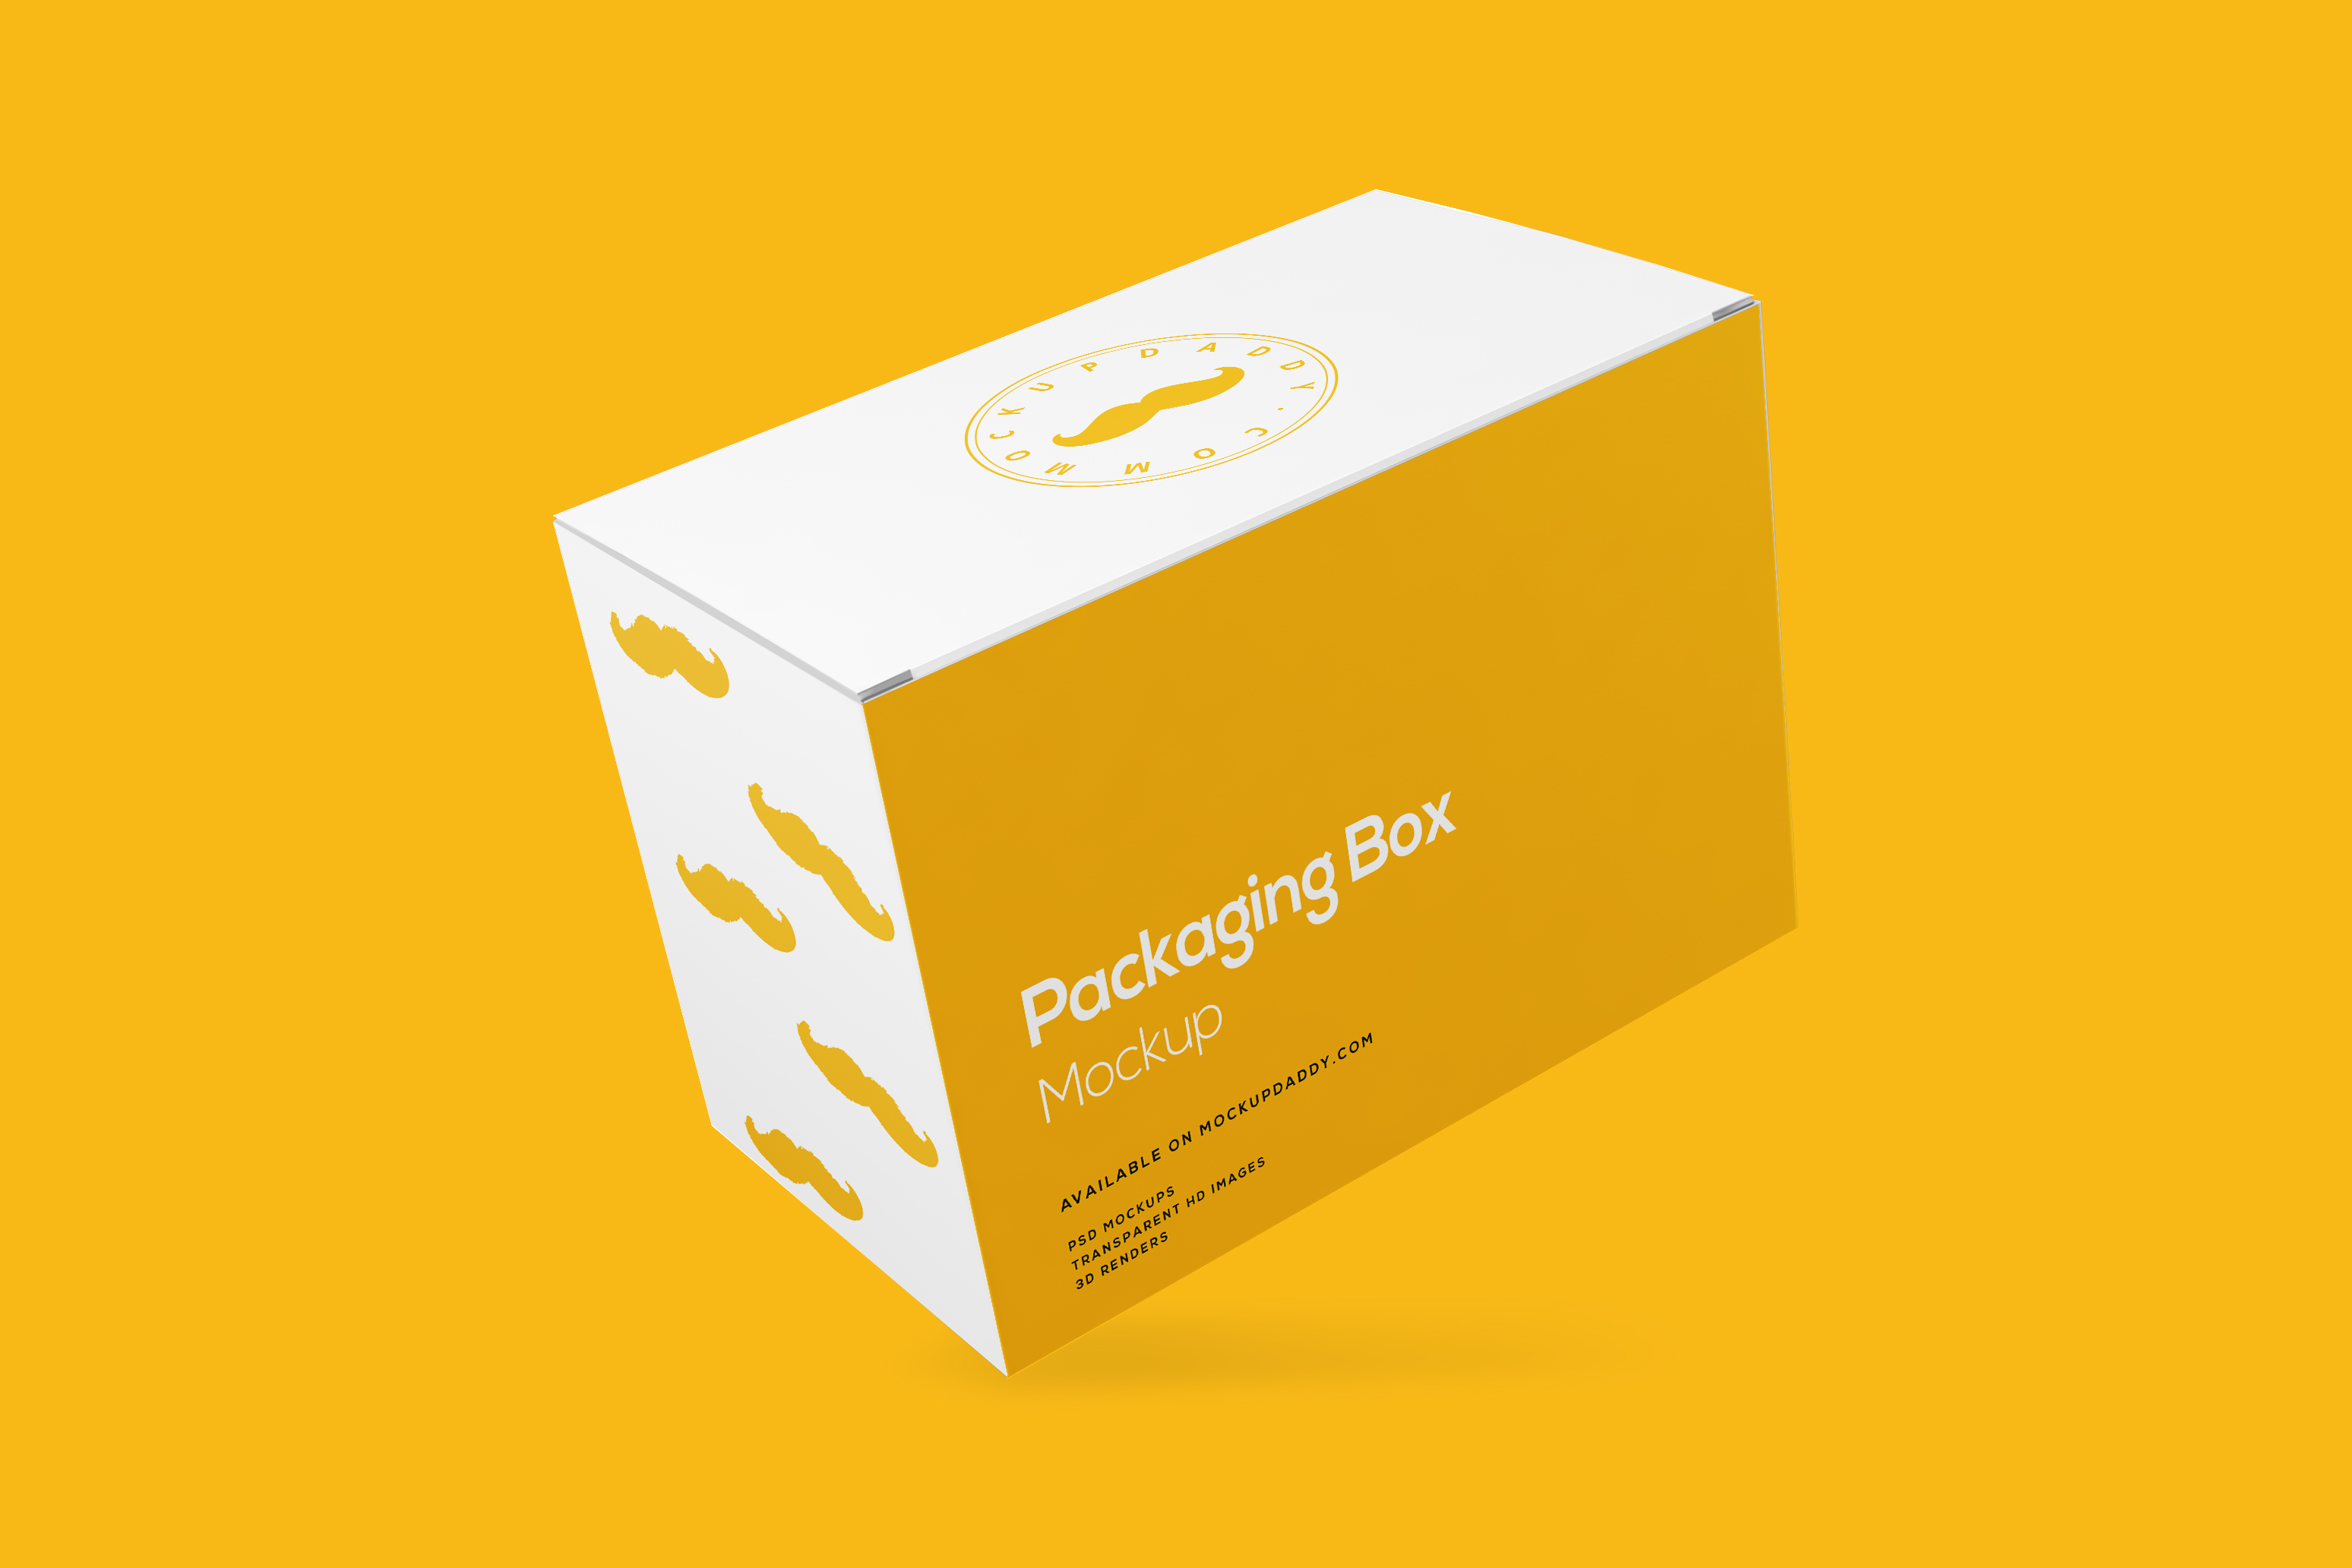 Rectangle Packaging Box Mockup Free Download Mockup Daddy